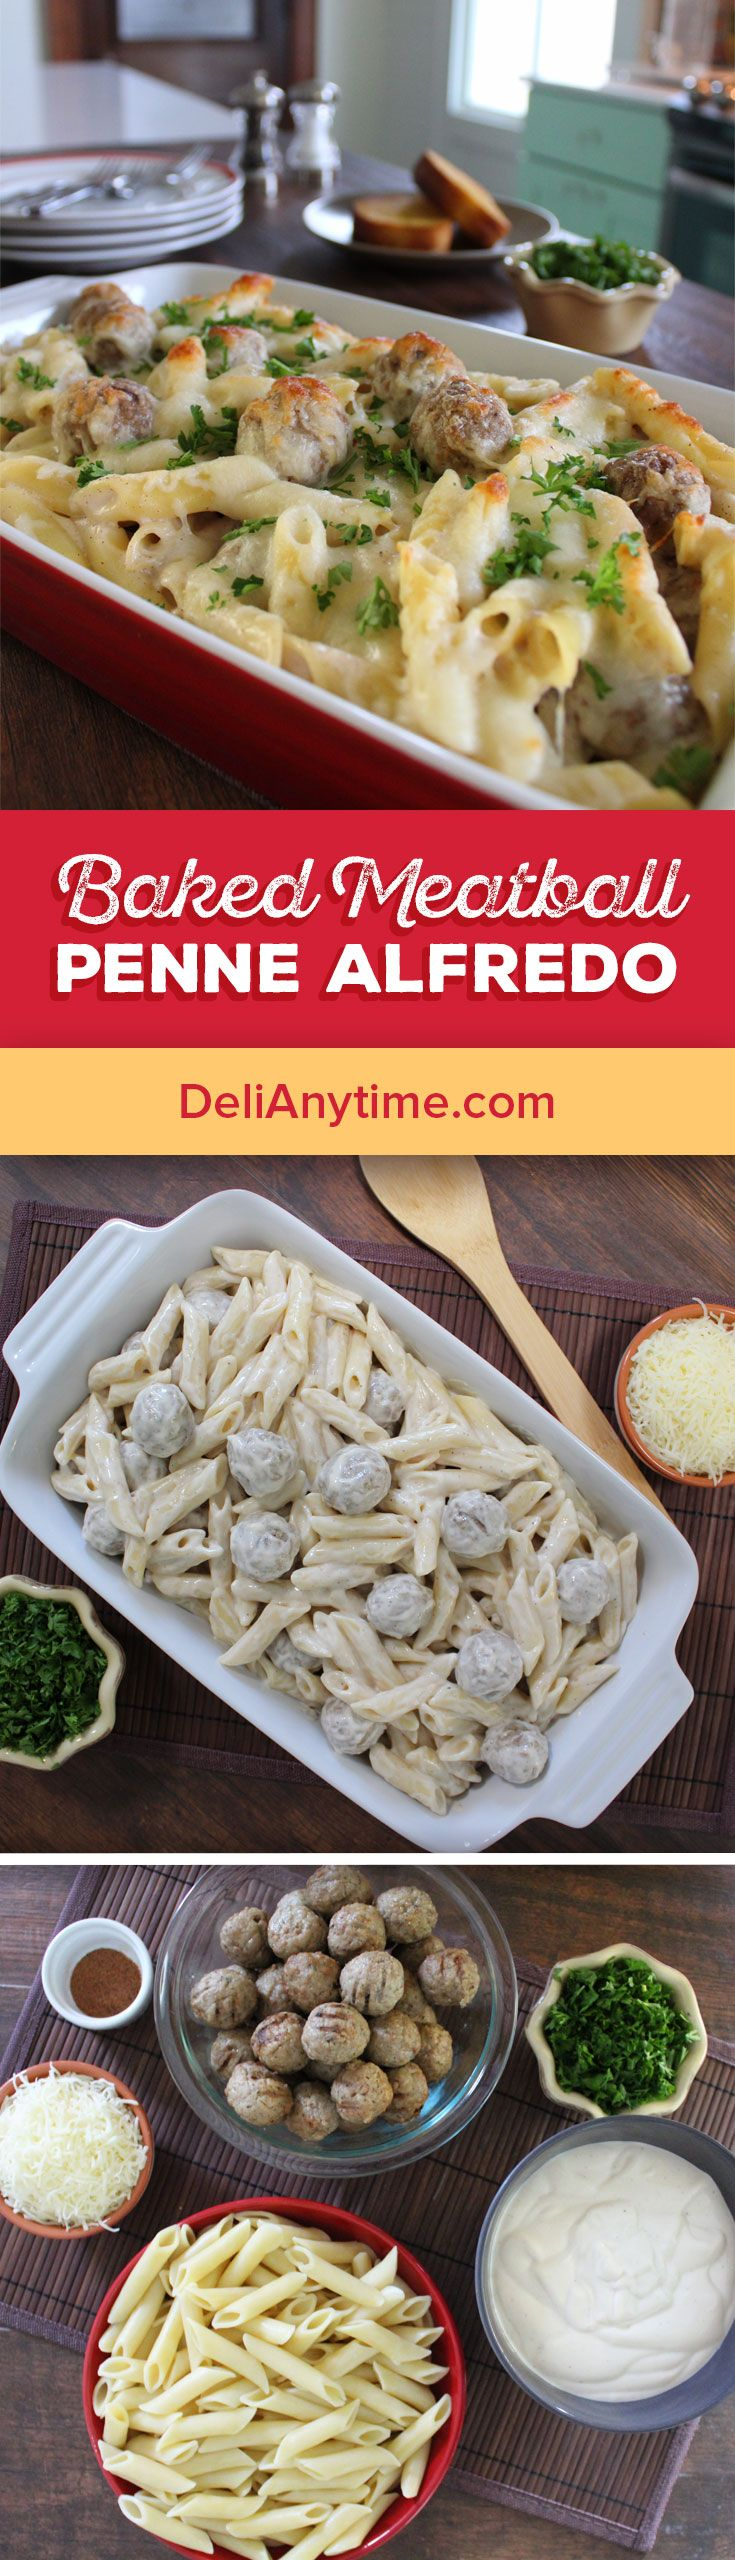 1. Preheat oven to 350 degrees. Boil penne pasta according to package instructions. 2. Heat meatballs and then add to hot pasta. 3. Mix the alfredo sauce with the nutmeg and pour over the pasta and mix, coating the pasta and meatballs. 4. Pour the pasta mixture in a greased shallow casserole dish and sprinkle mozzarella on top. 5. Place in the preheated oven and bake until heated through and cheese is melted and bubbly.